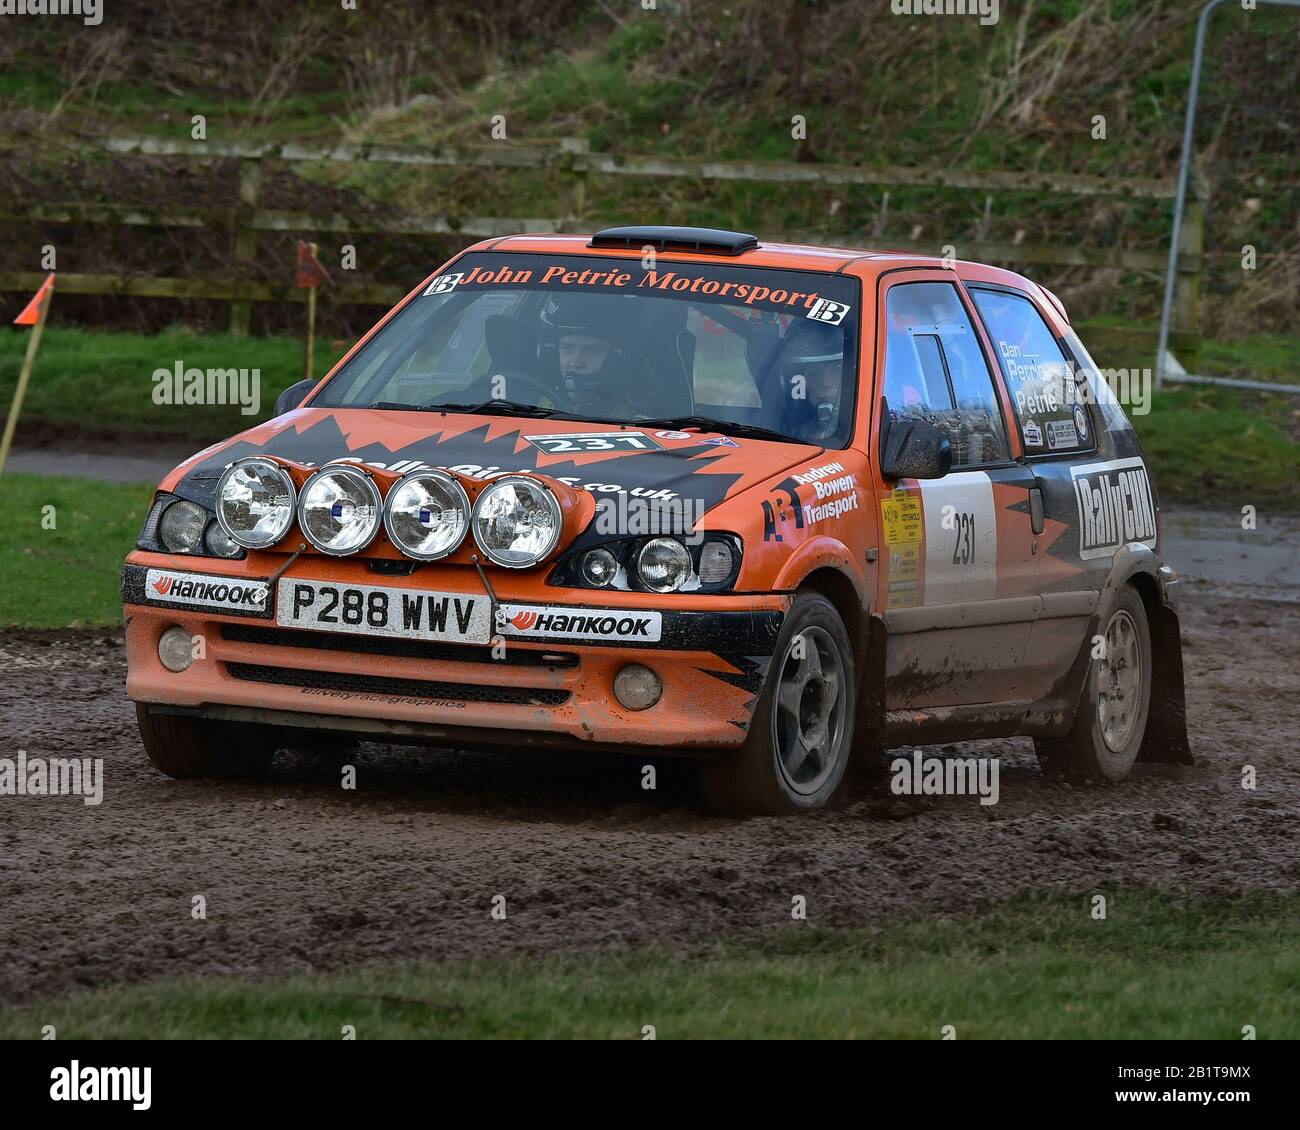 John Petrie Peugeot 106 Gti Race Retro Naec National Agricultural Exhibition Centre Stoneleigh Park Warwickshire England Sunday 23rd February Stock Photo Alamy